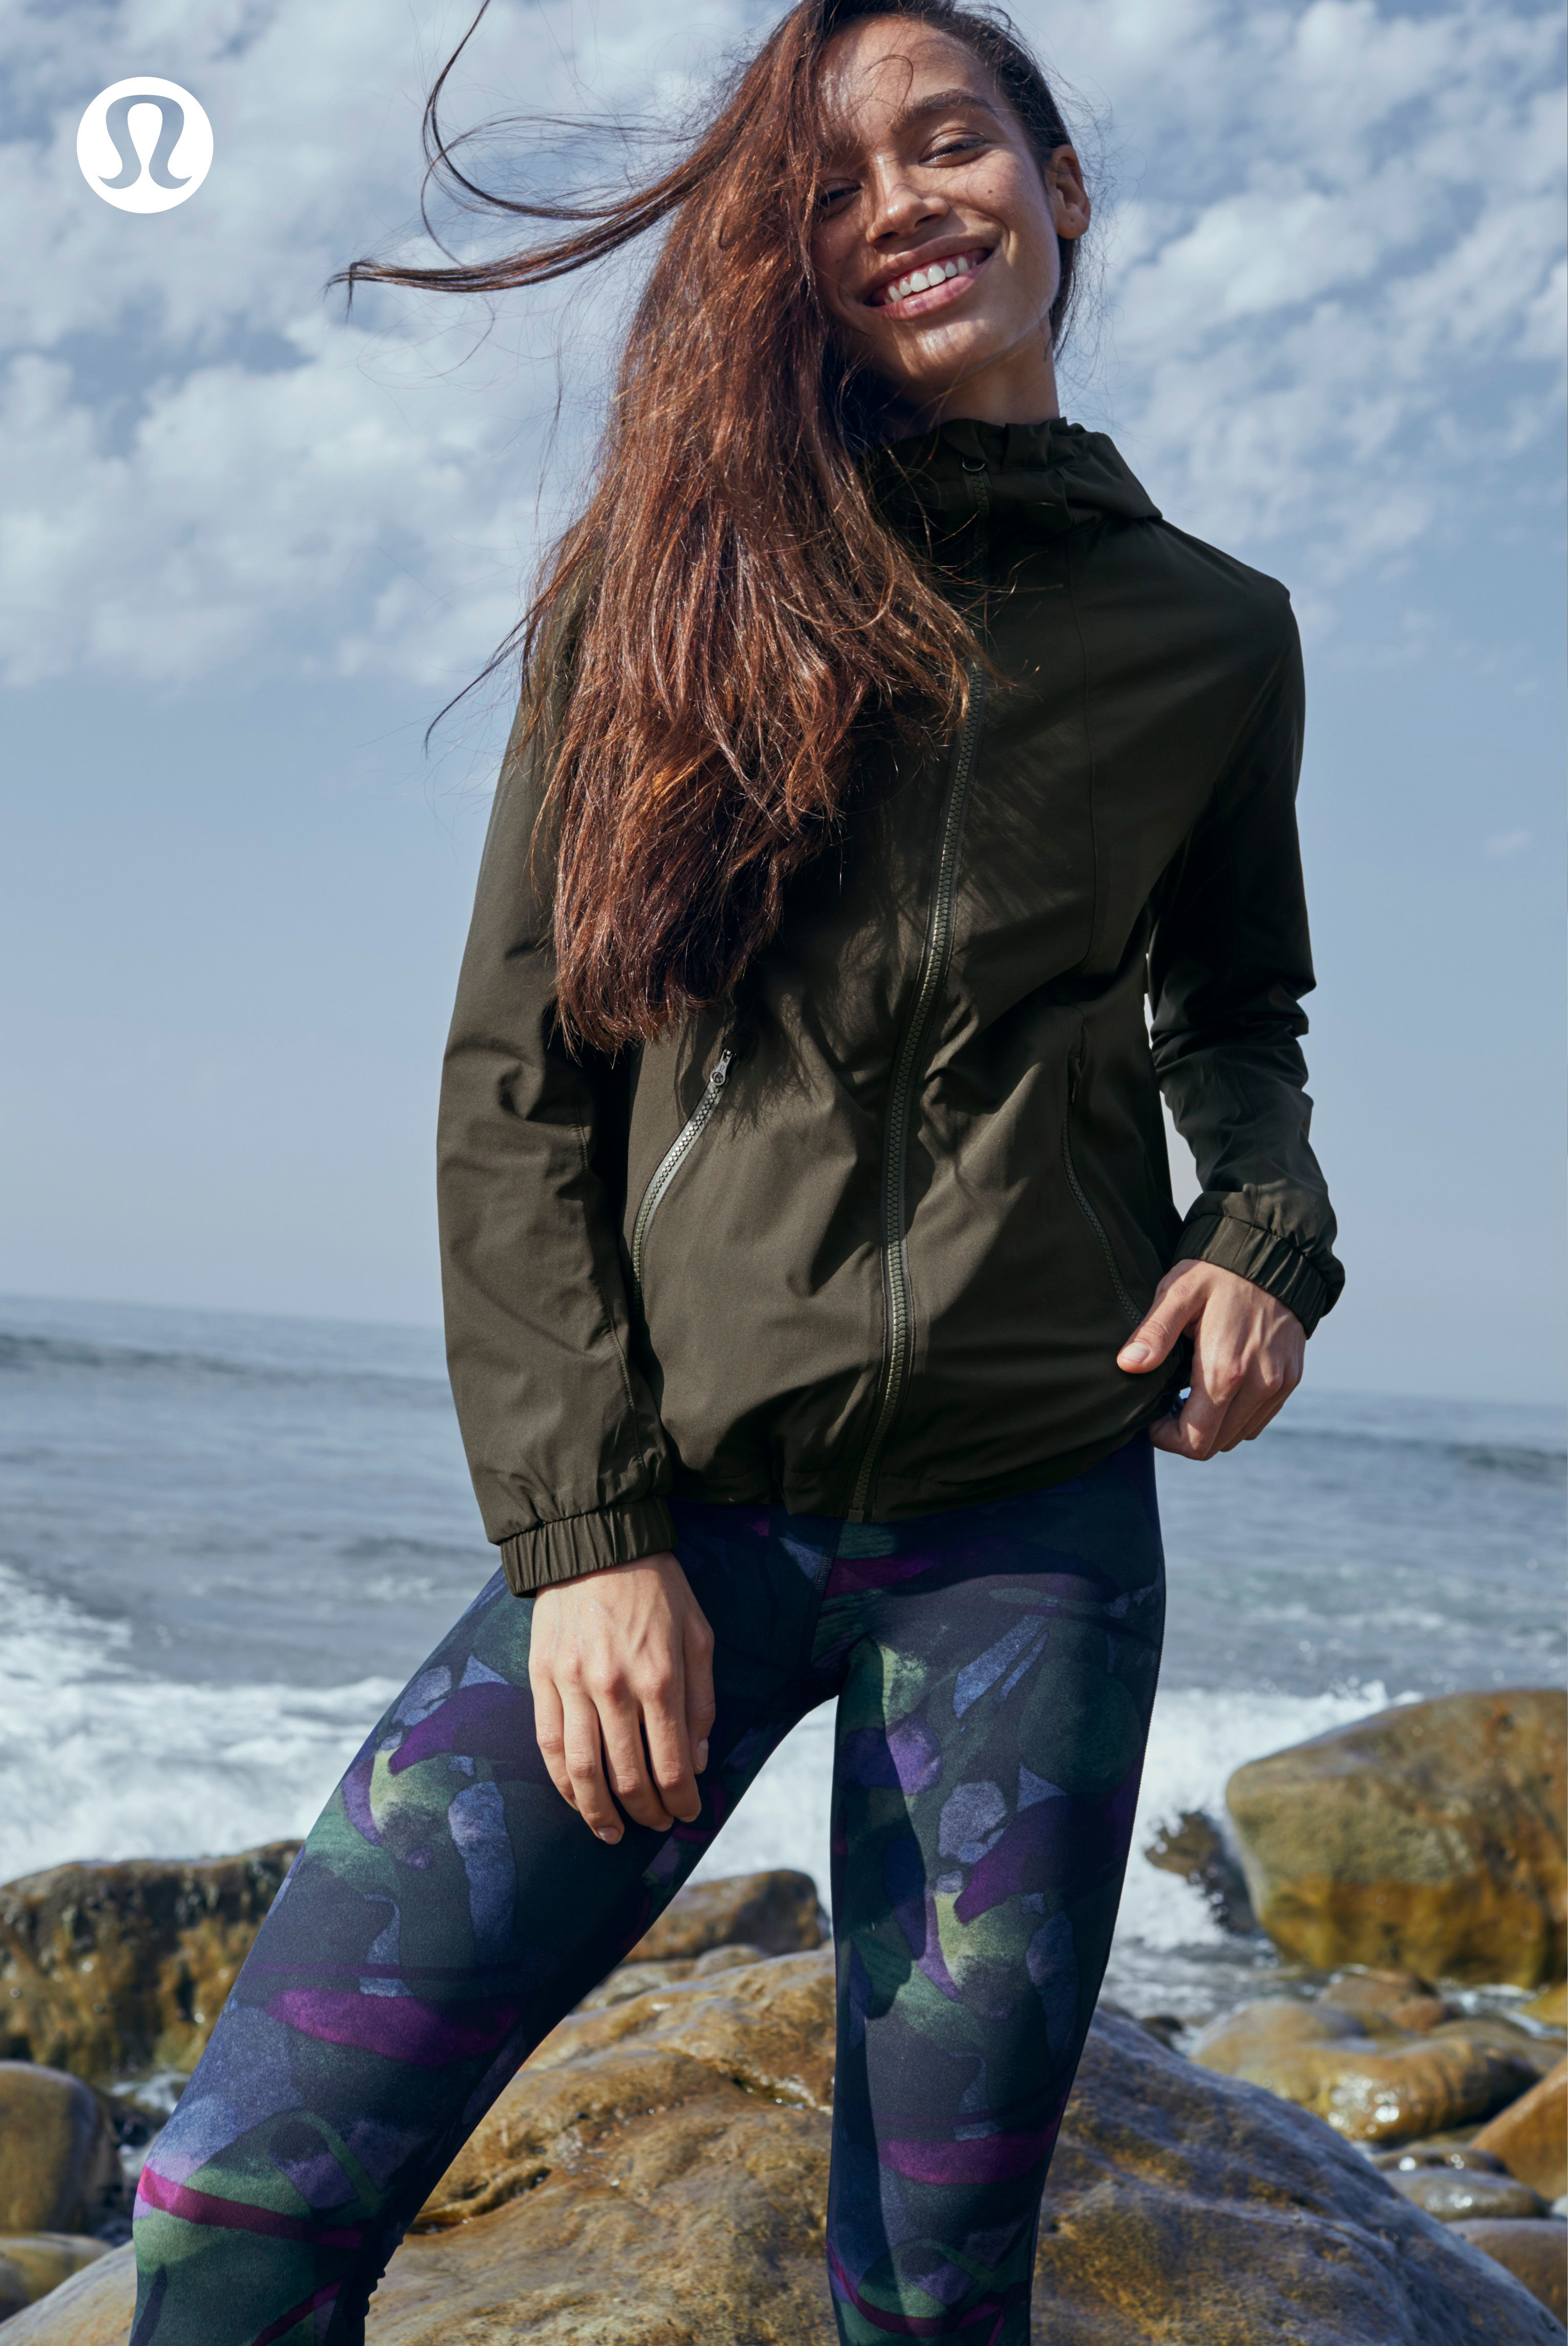 Fall Adventures Start With Intentionally Designed Outerwear Yoga Clothes Clothes Athletic Outfits [ 4583 x 3063 Pixel ]